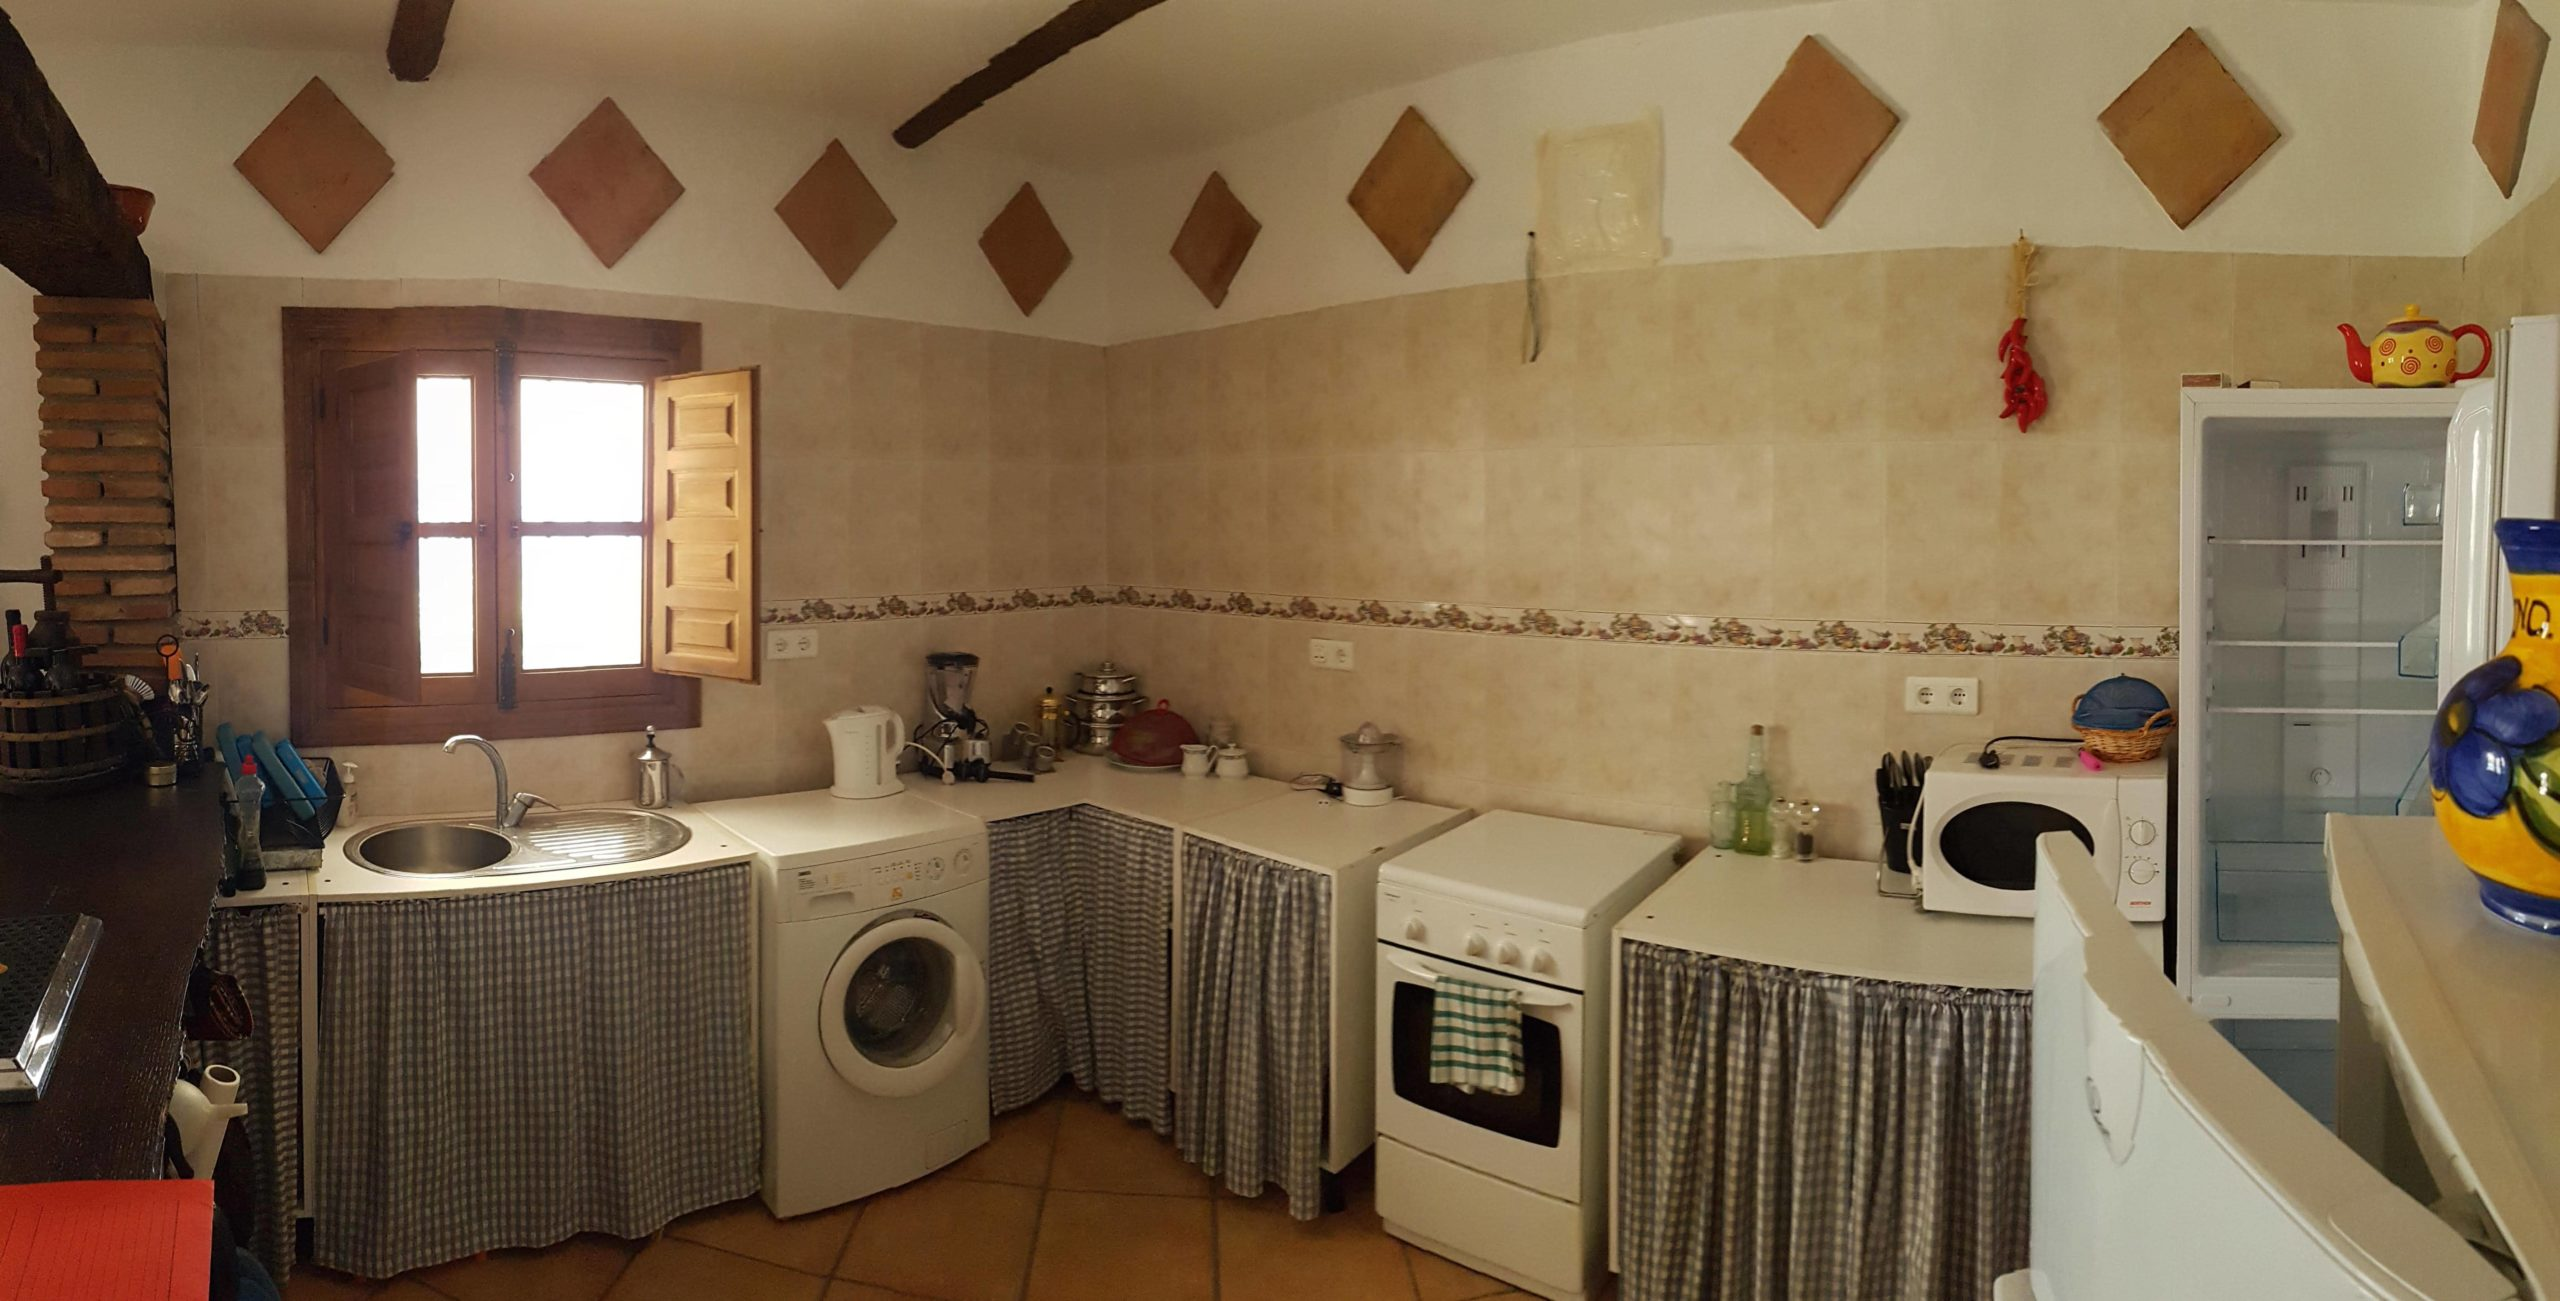 Kitchen Design and Fitting malaga